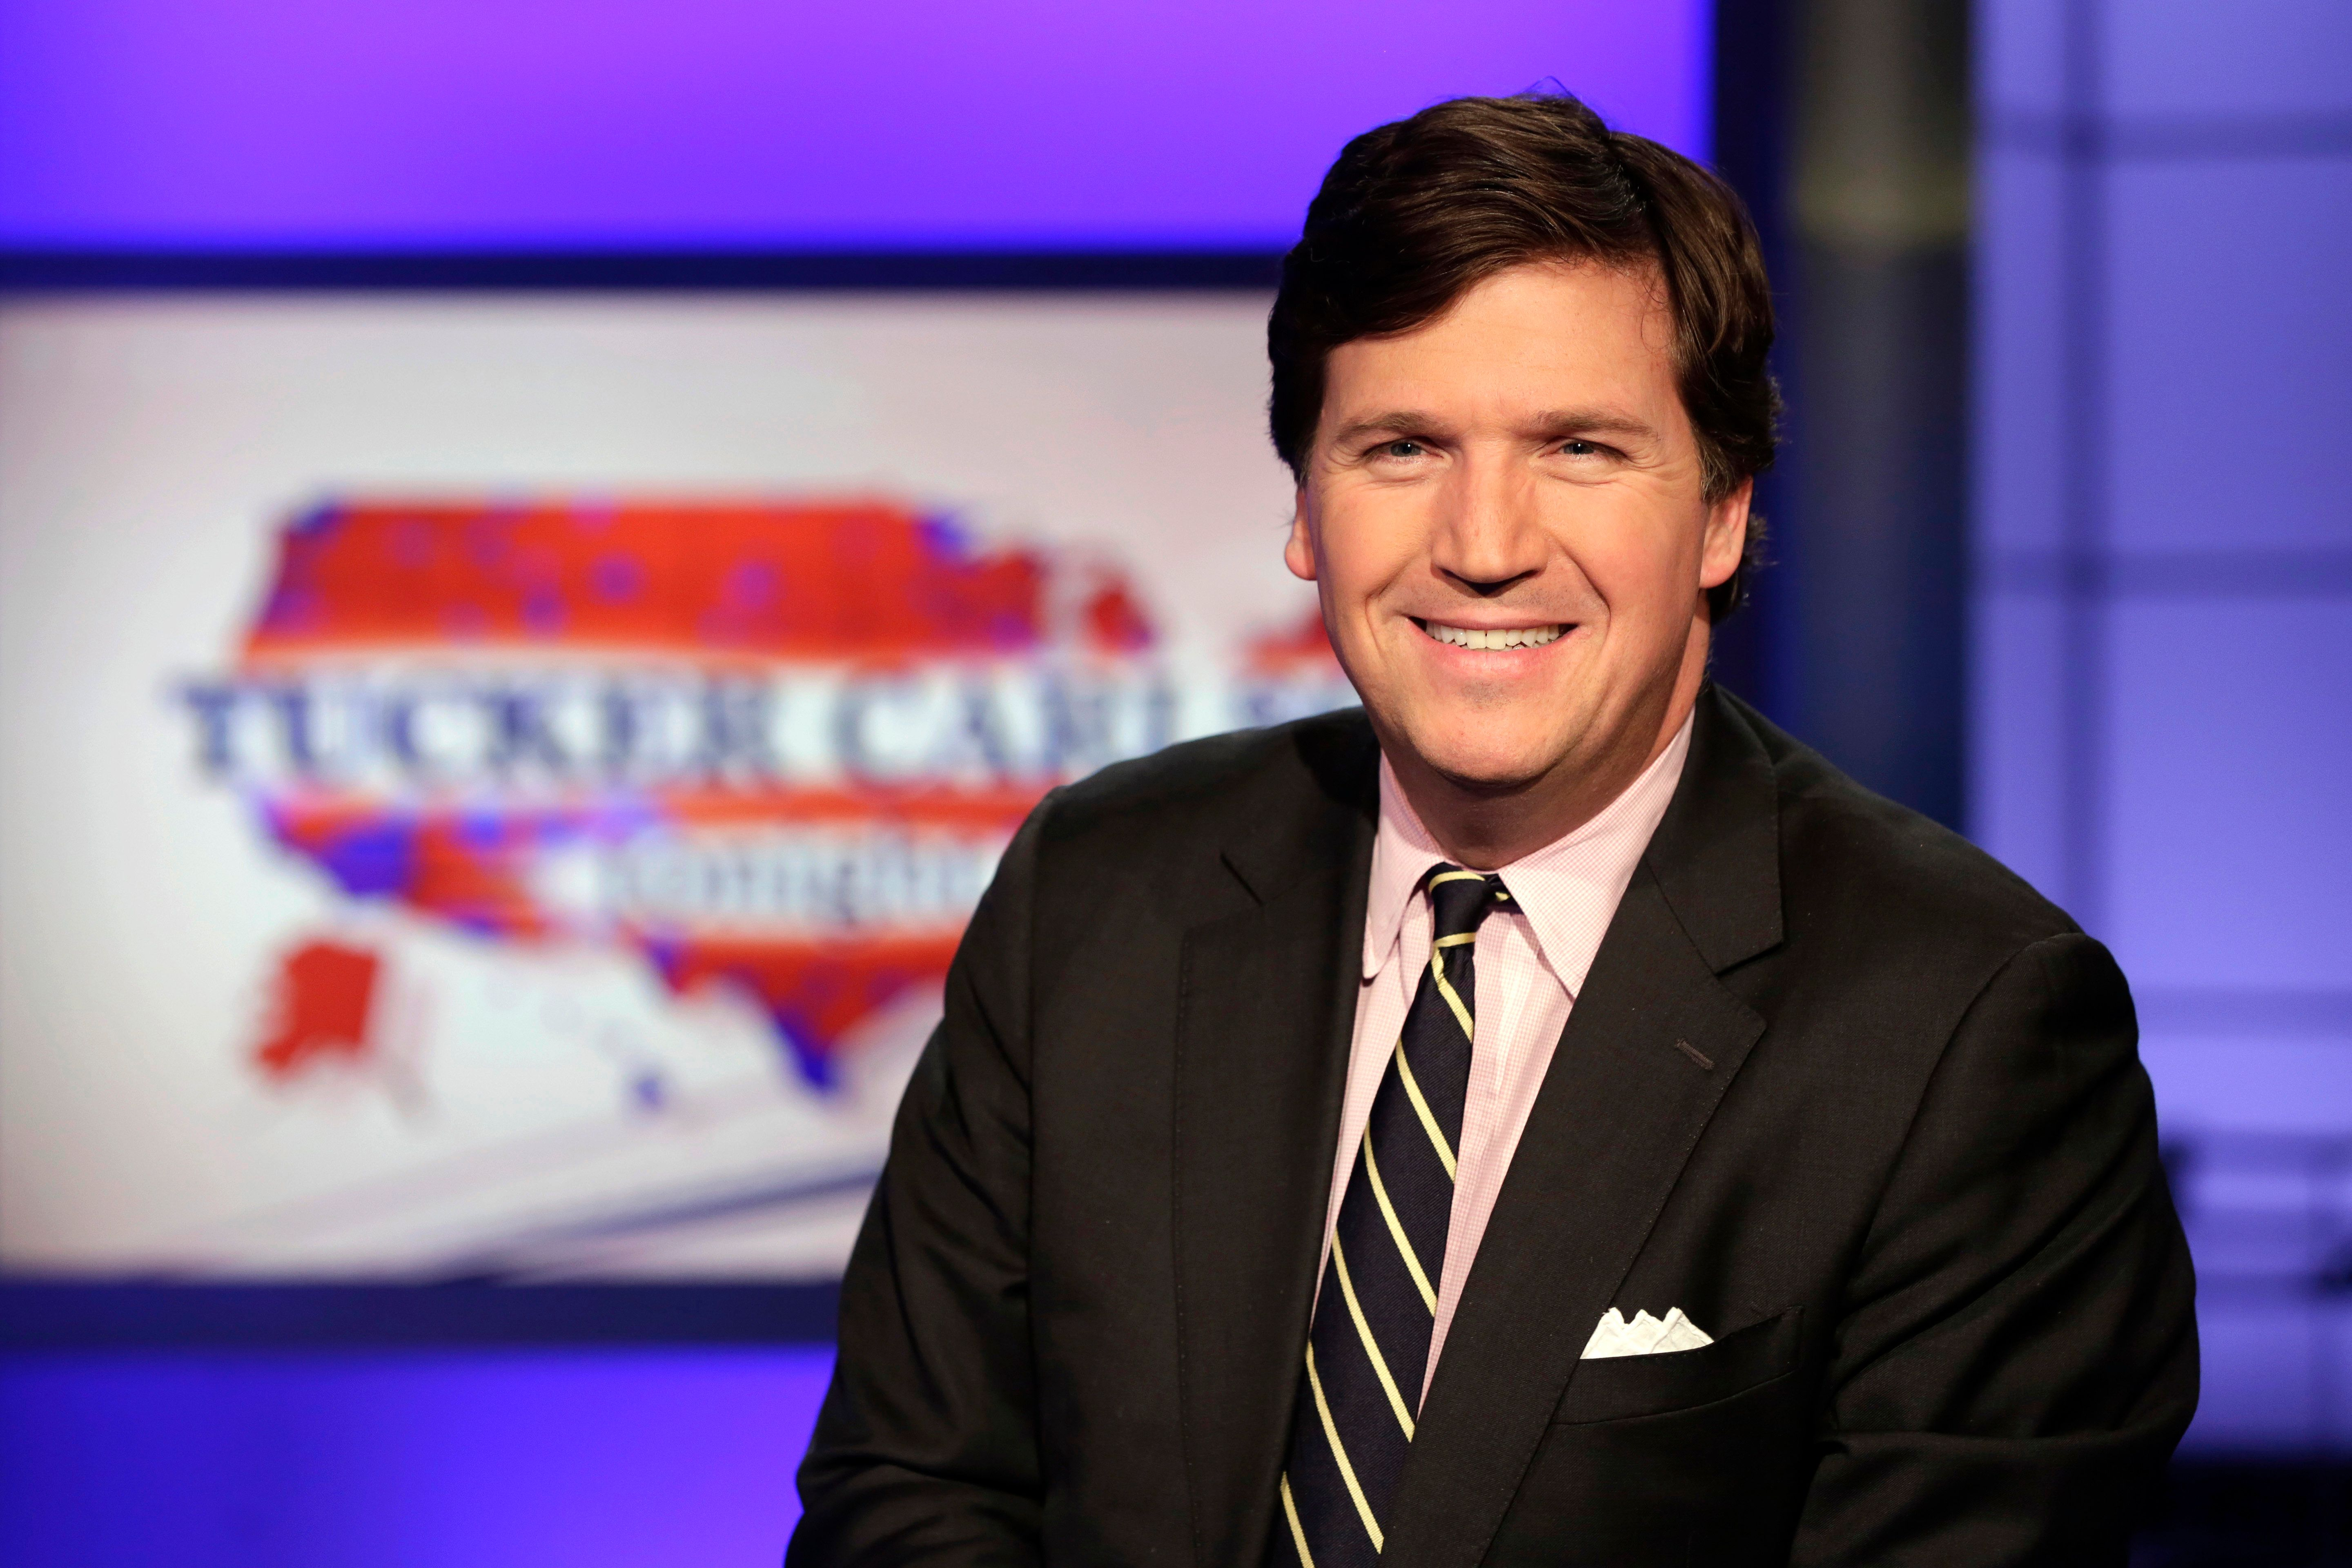 """Tucker Carlson, host of """"Tucker Carlson Tonight,"""" poses for photos in a Fox News Channel studio, in New York, Thursday, March 2, 2107. (AP Photo/Richard Drew)"""